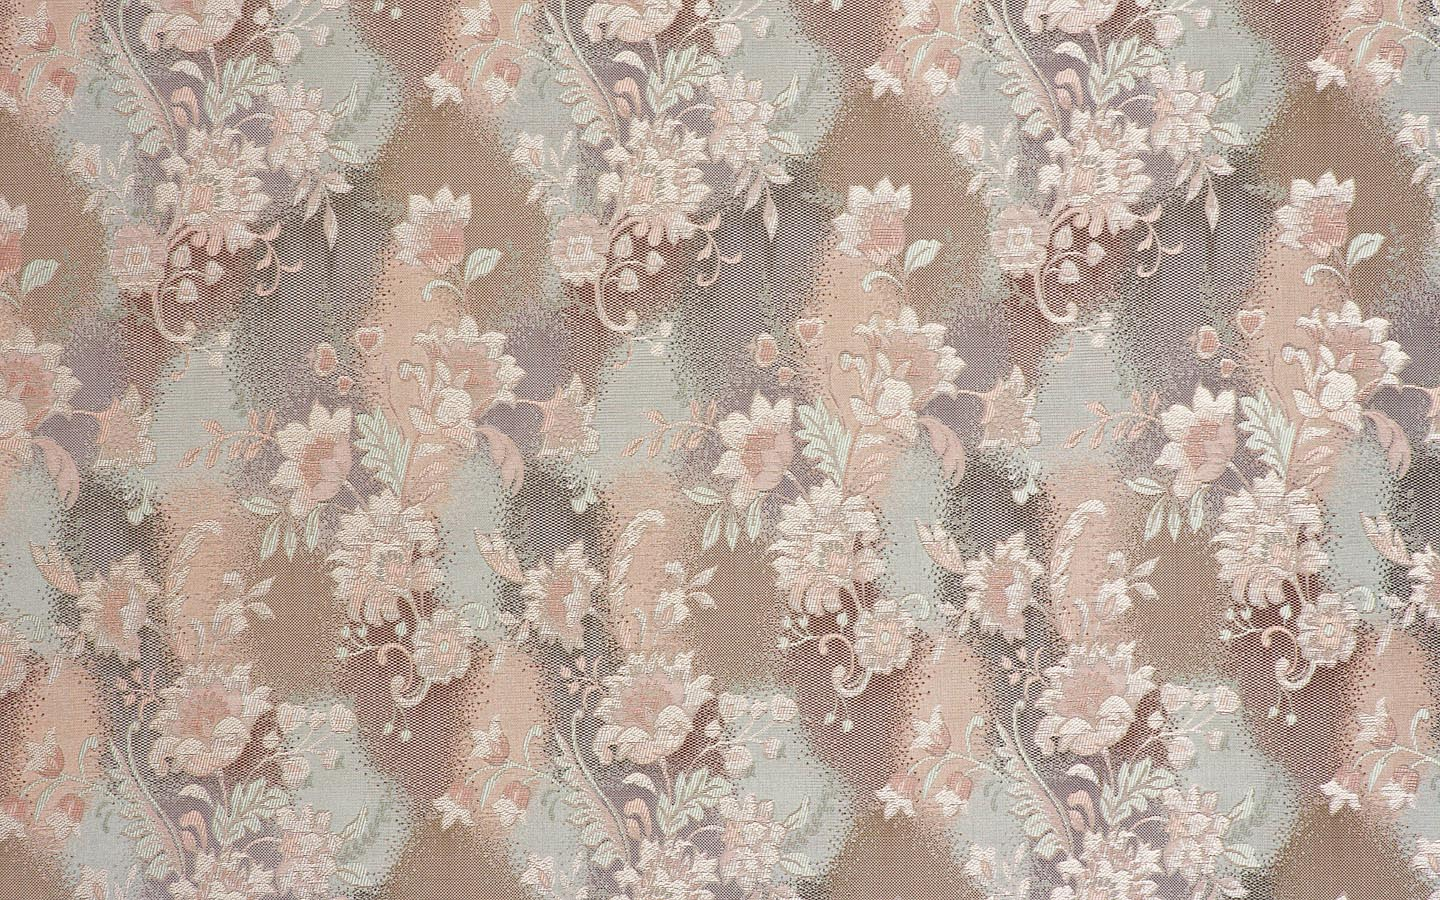 Fabric texture 14741